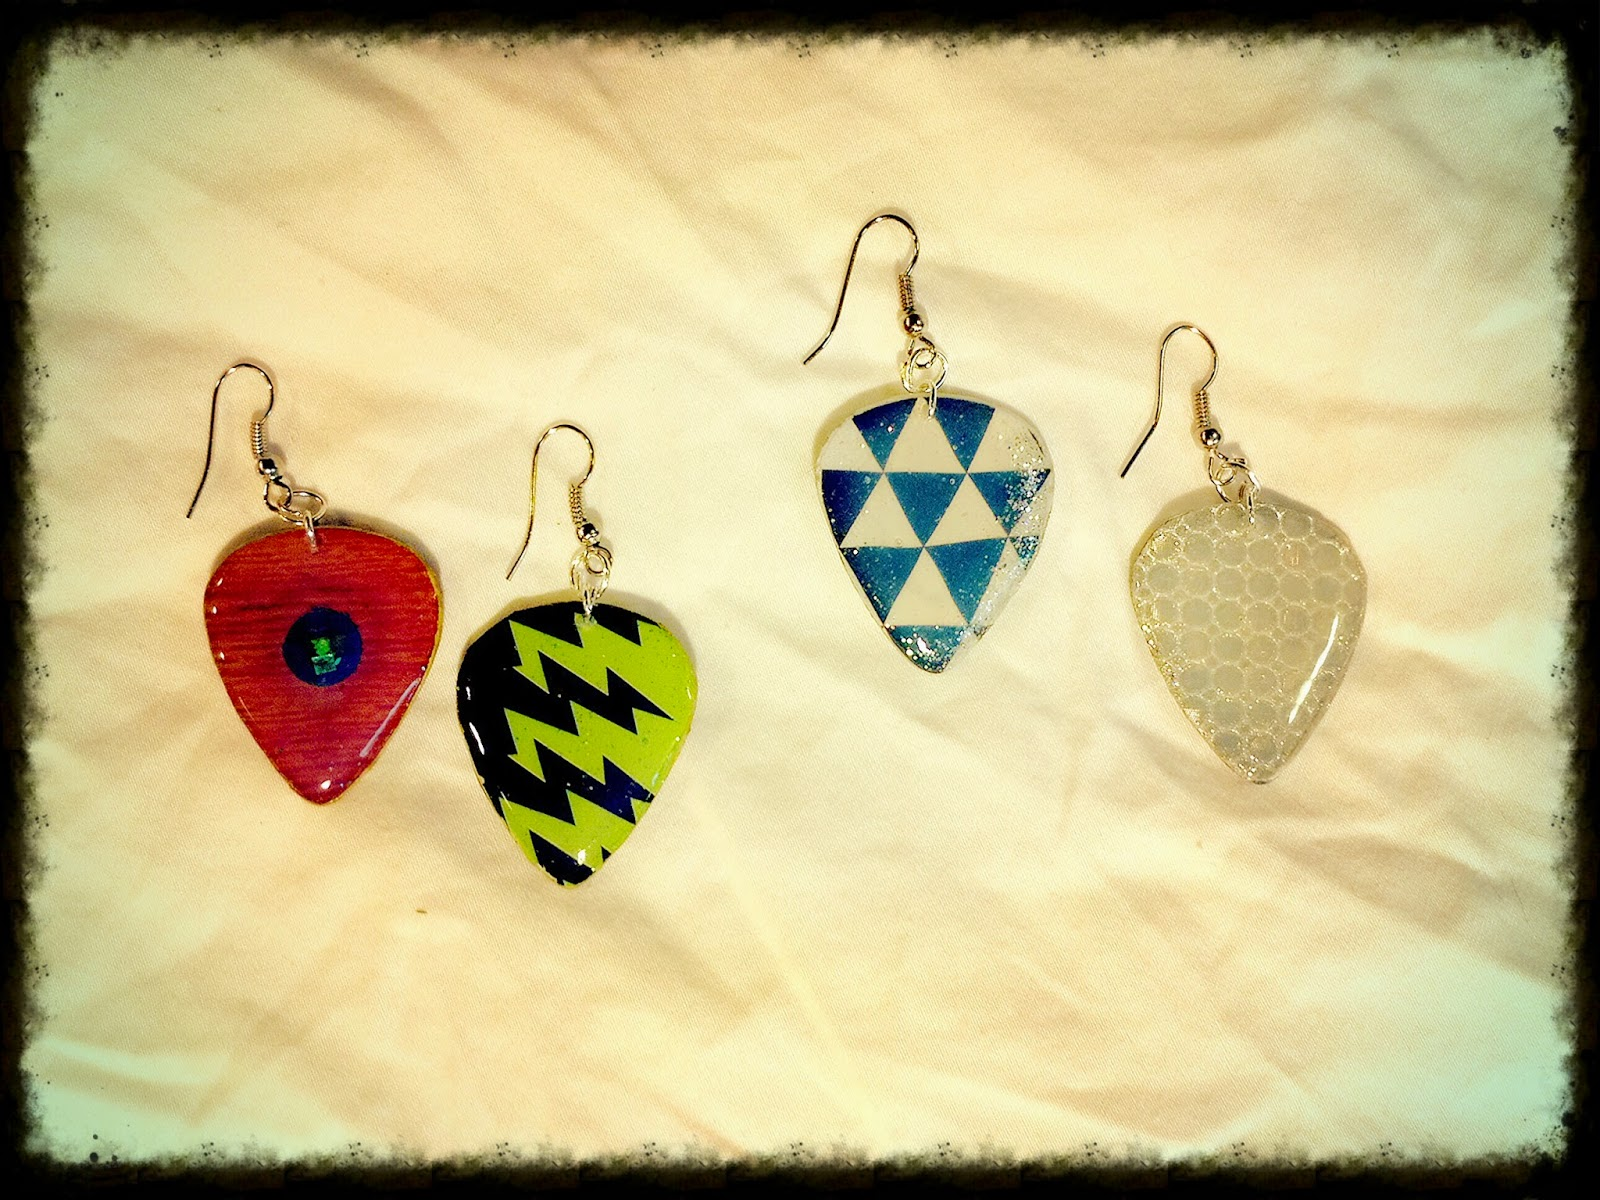 Scrapbook designs guitar pick earrings!